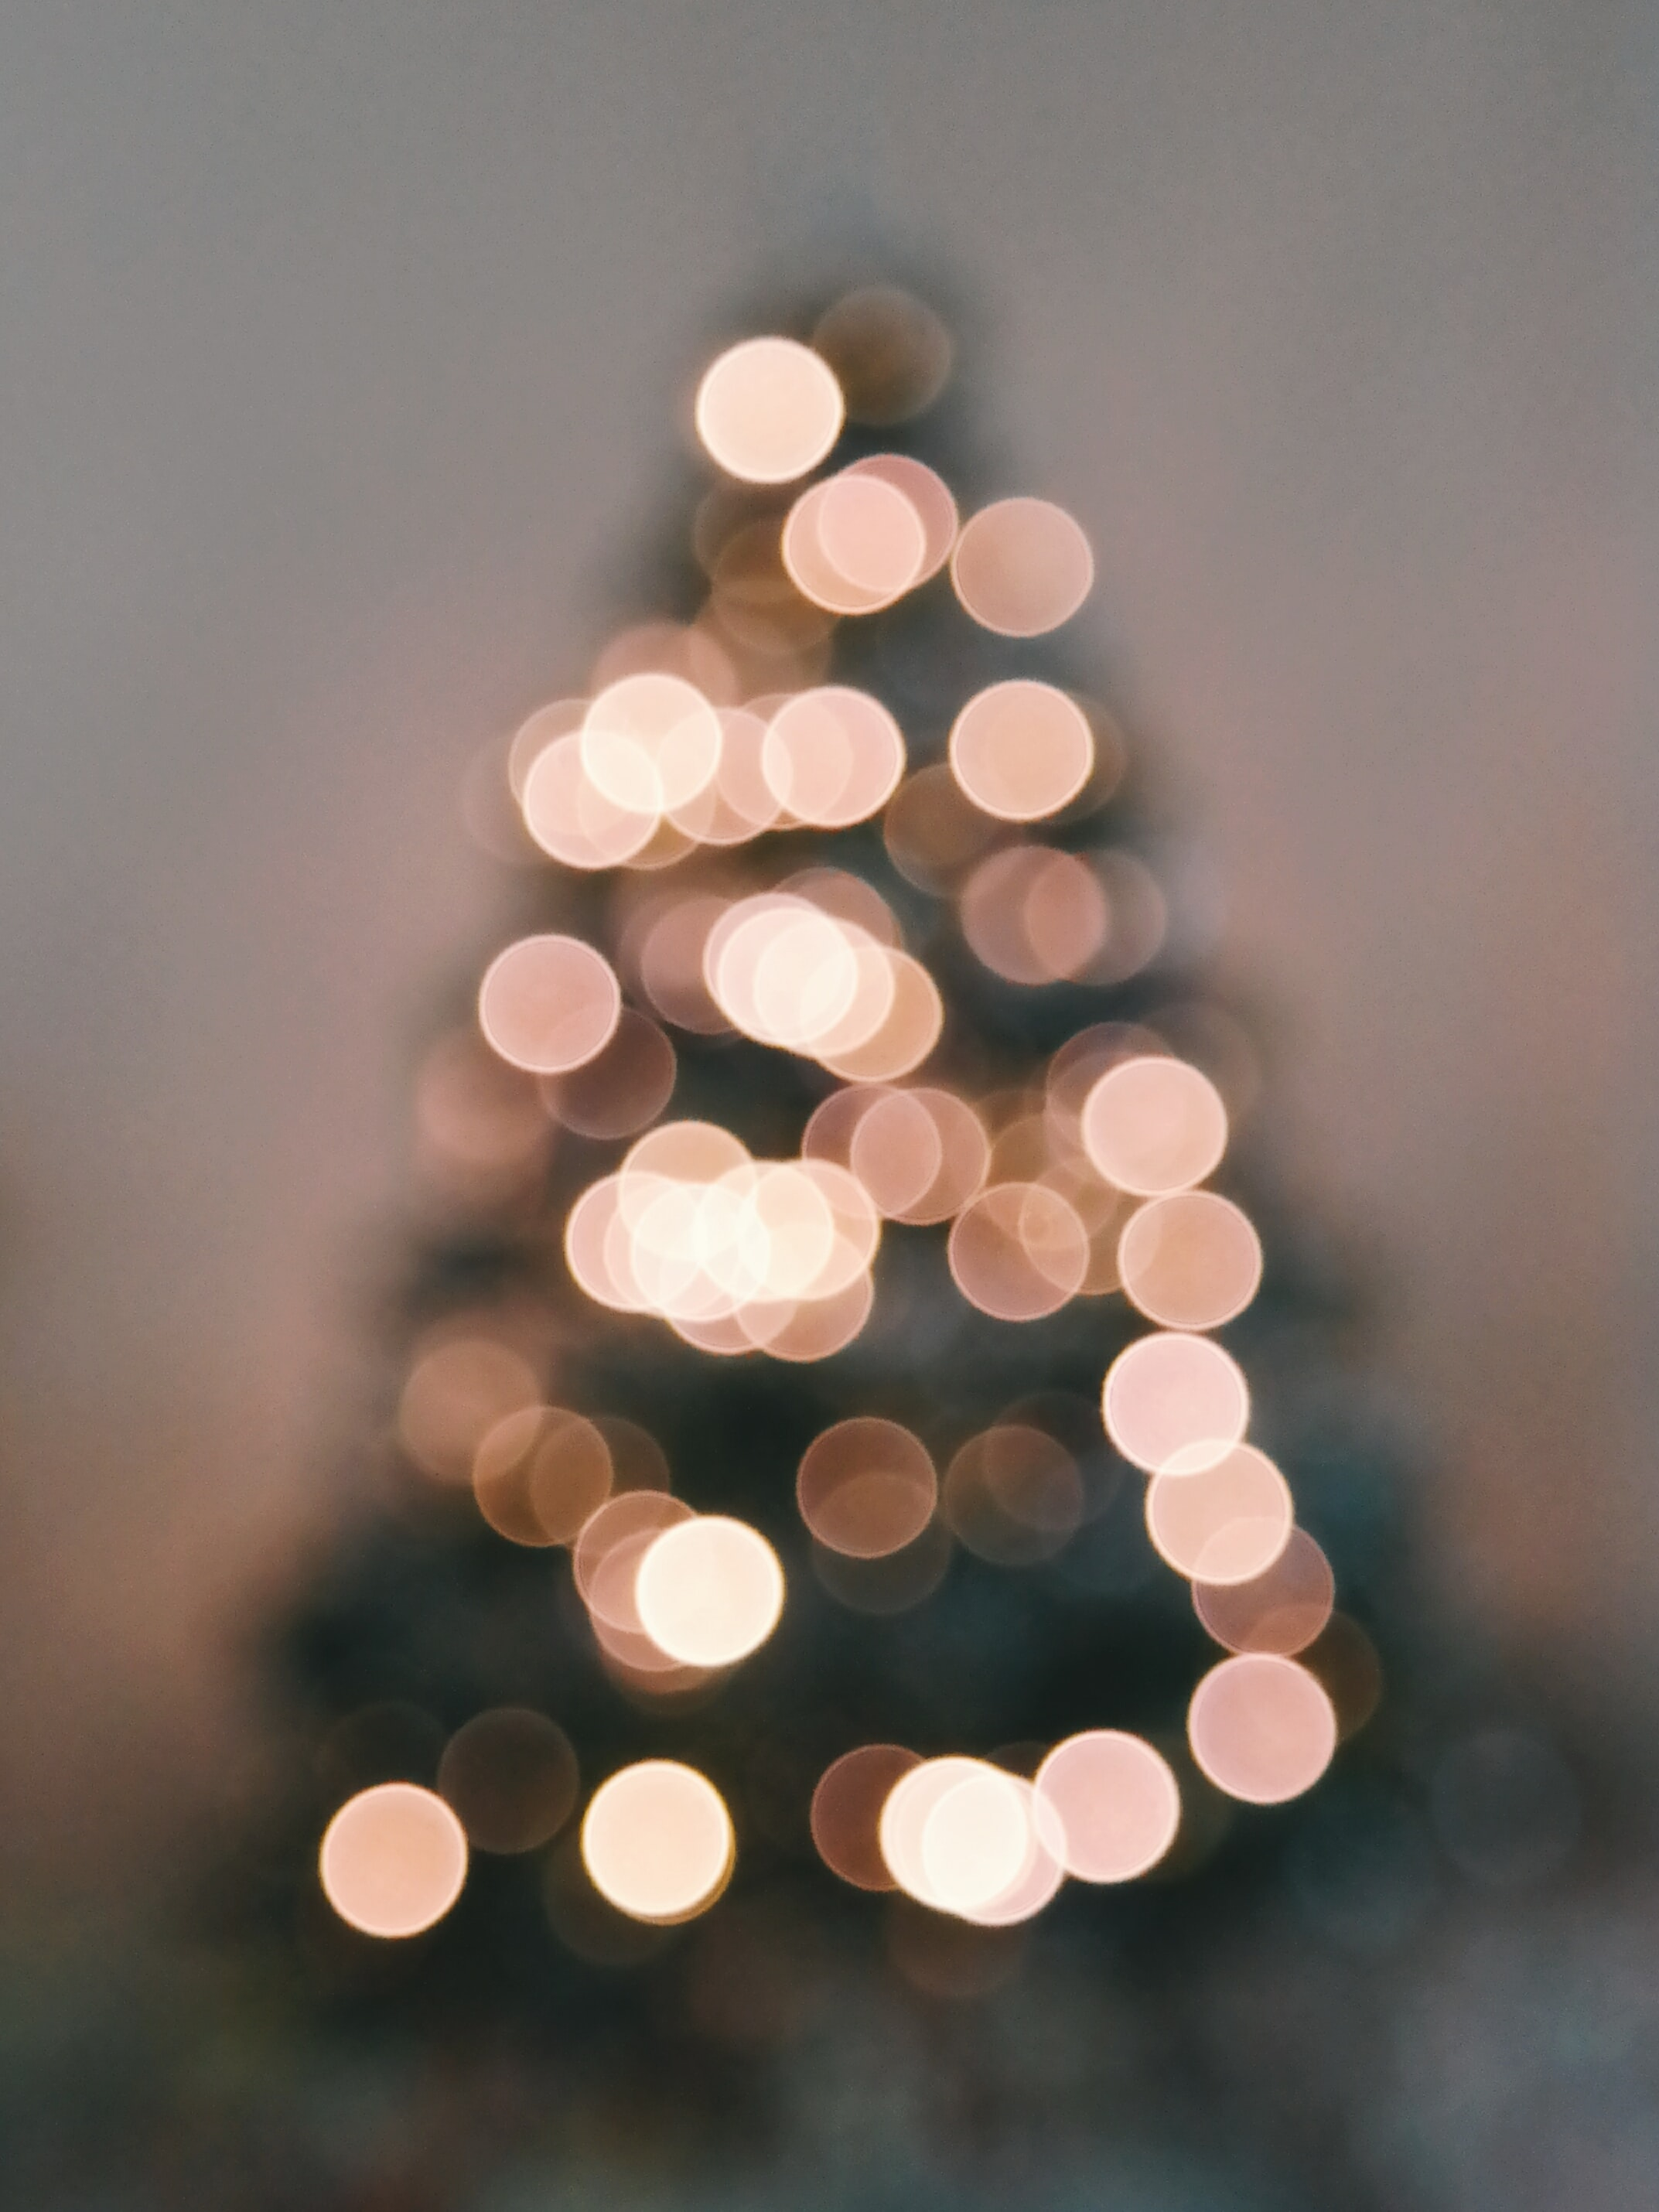 A blurred image of a lit up outdoor Christmas tree.